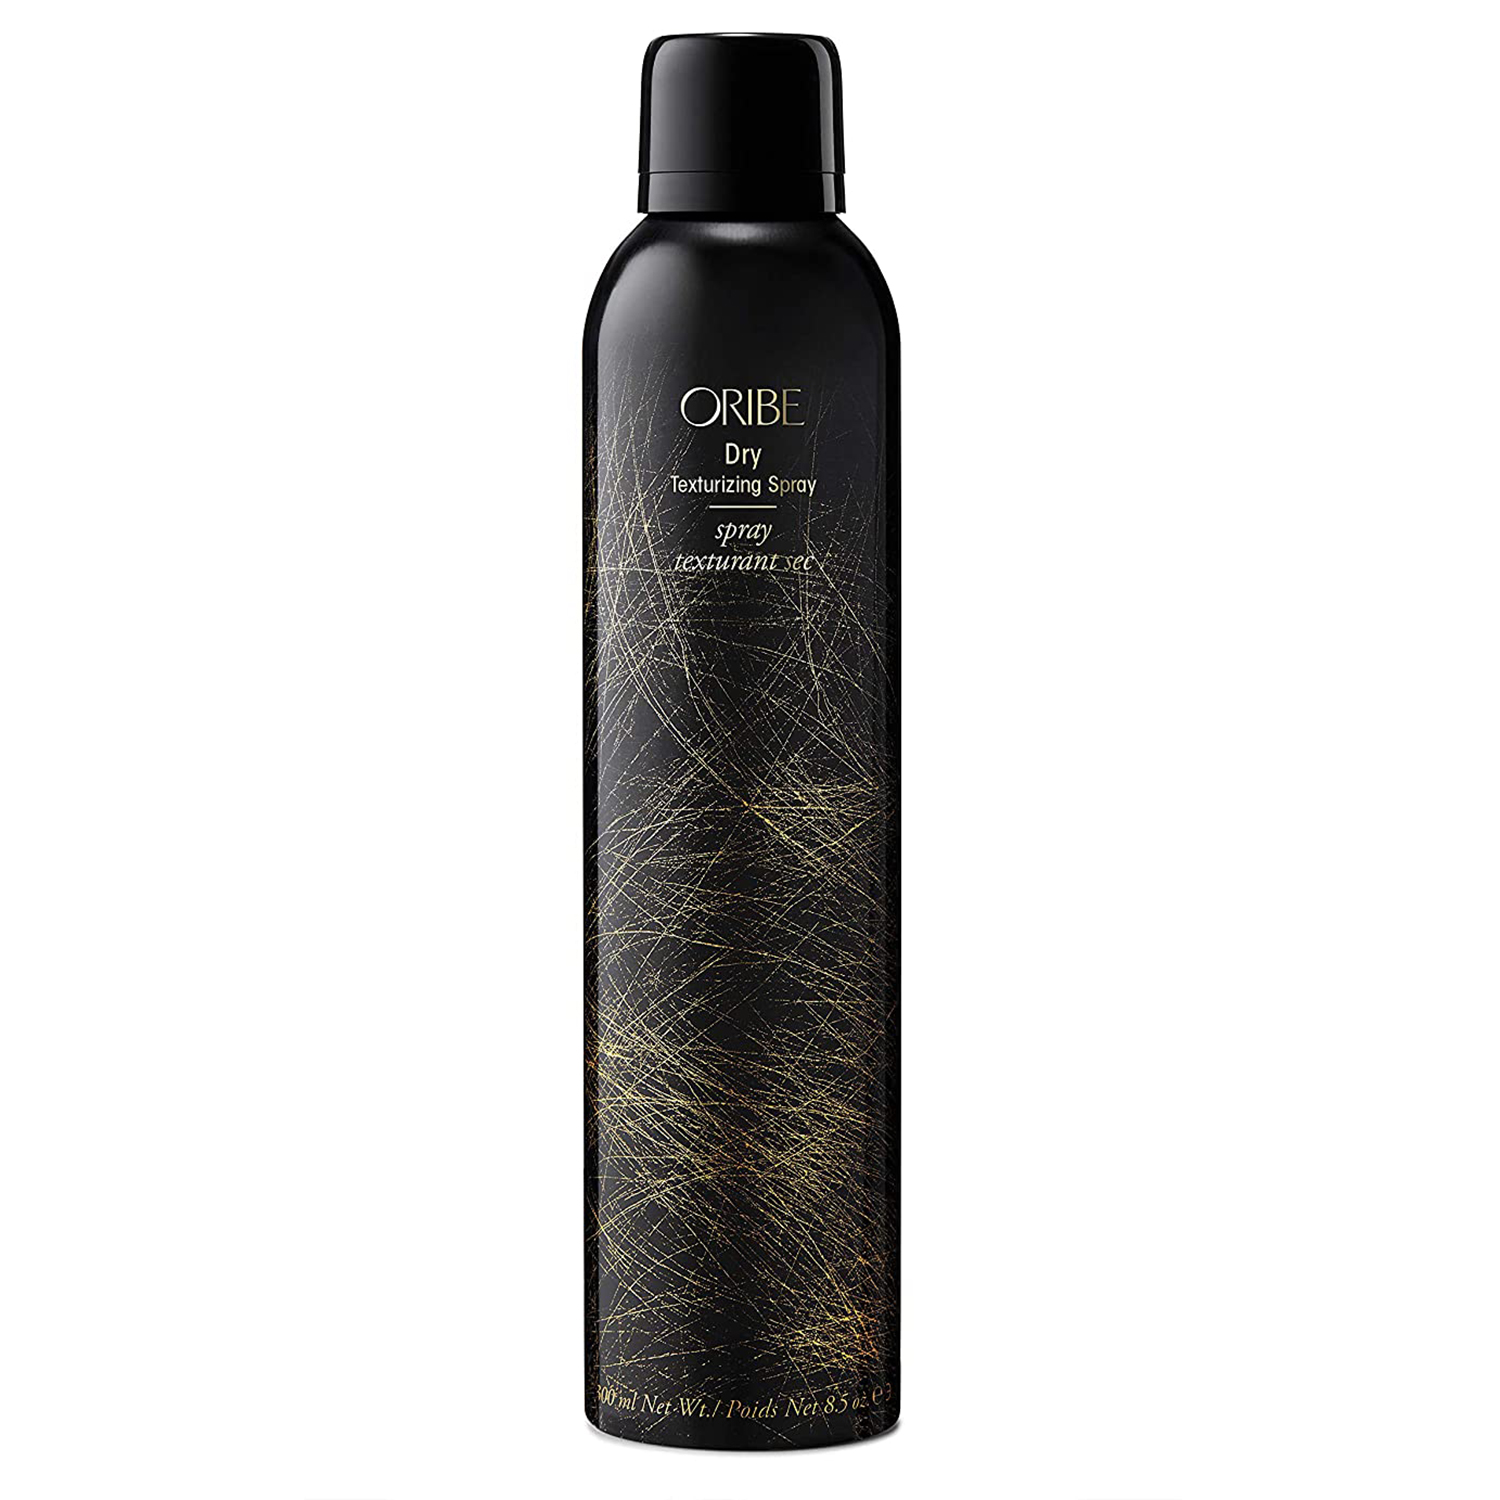 Oribe Hair Products on Amazon